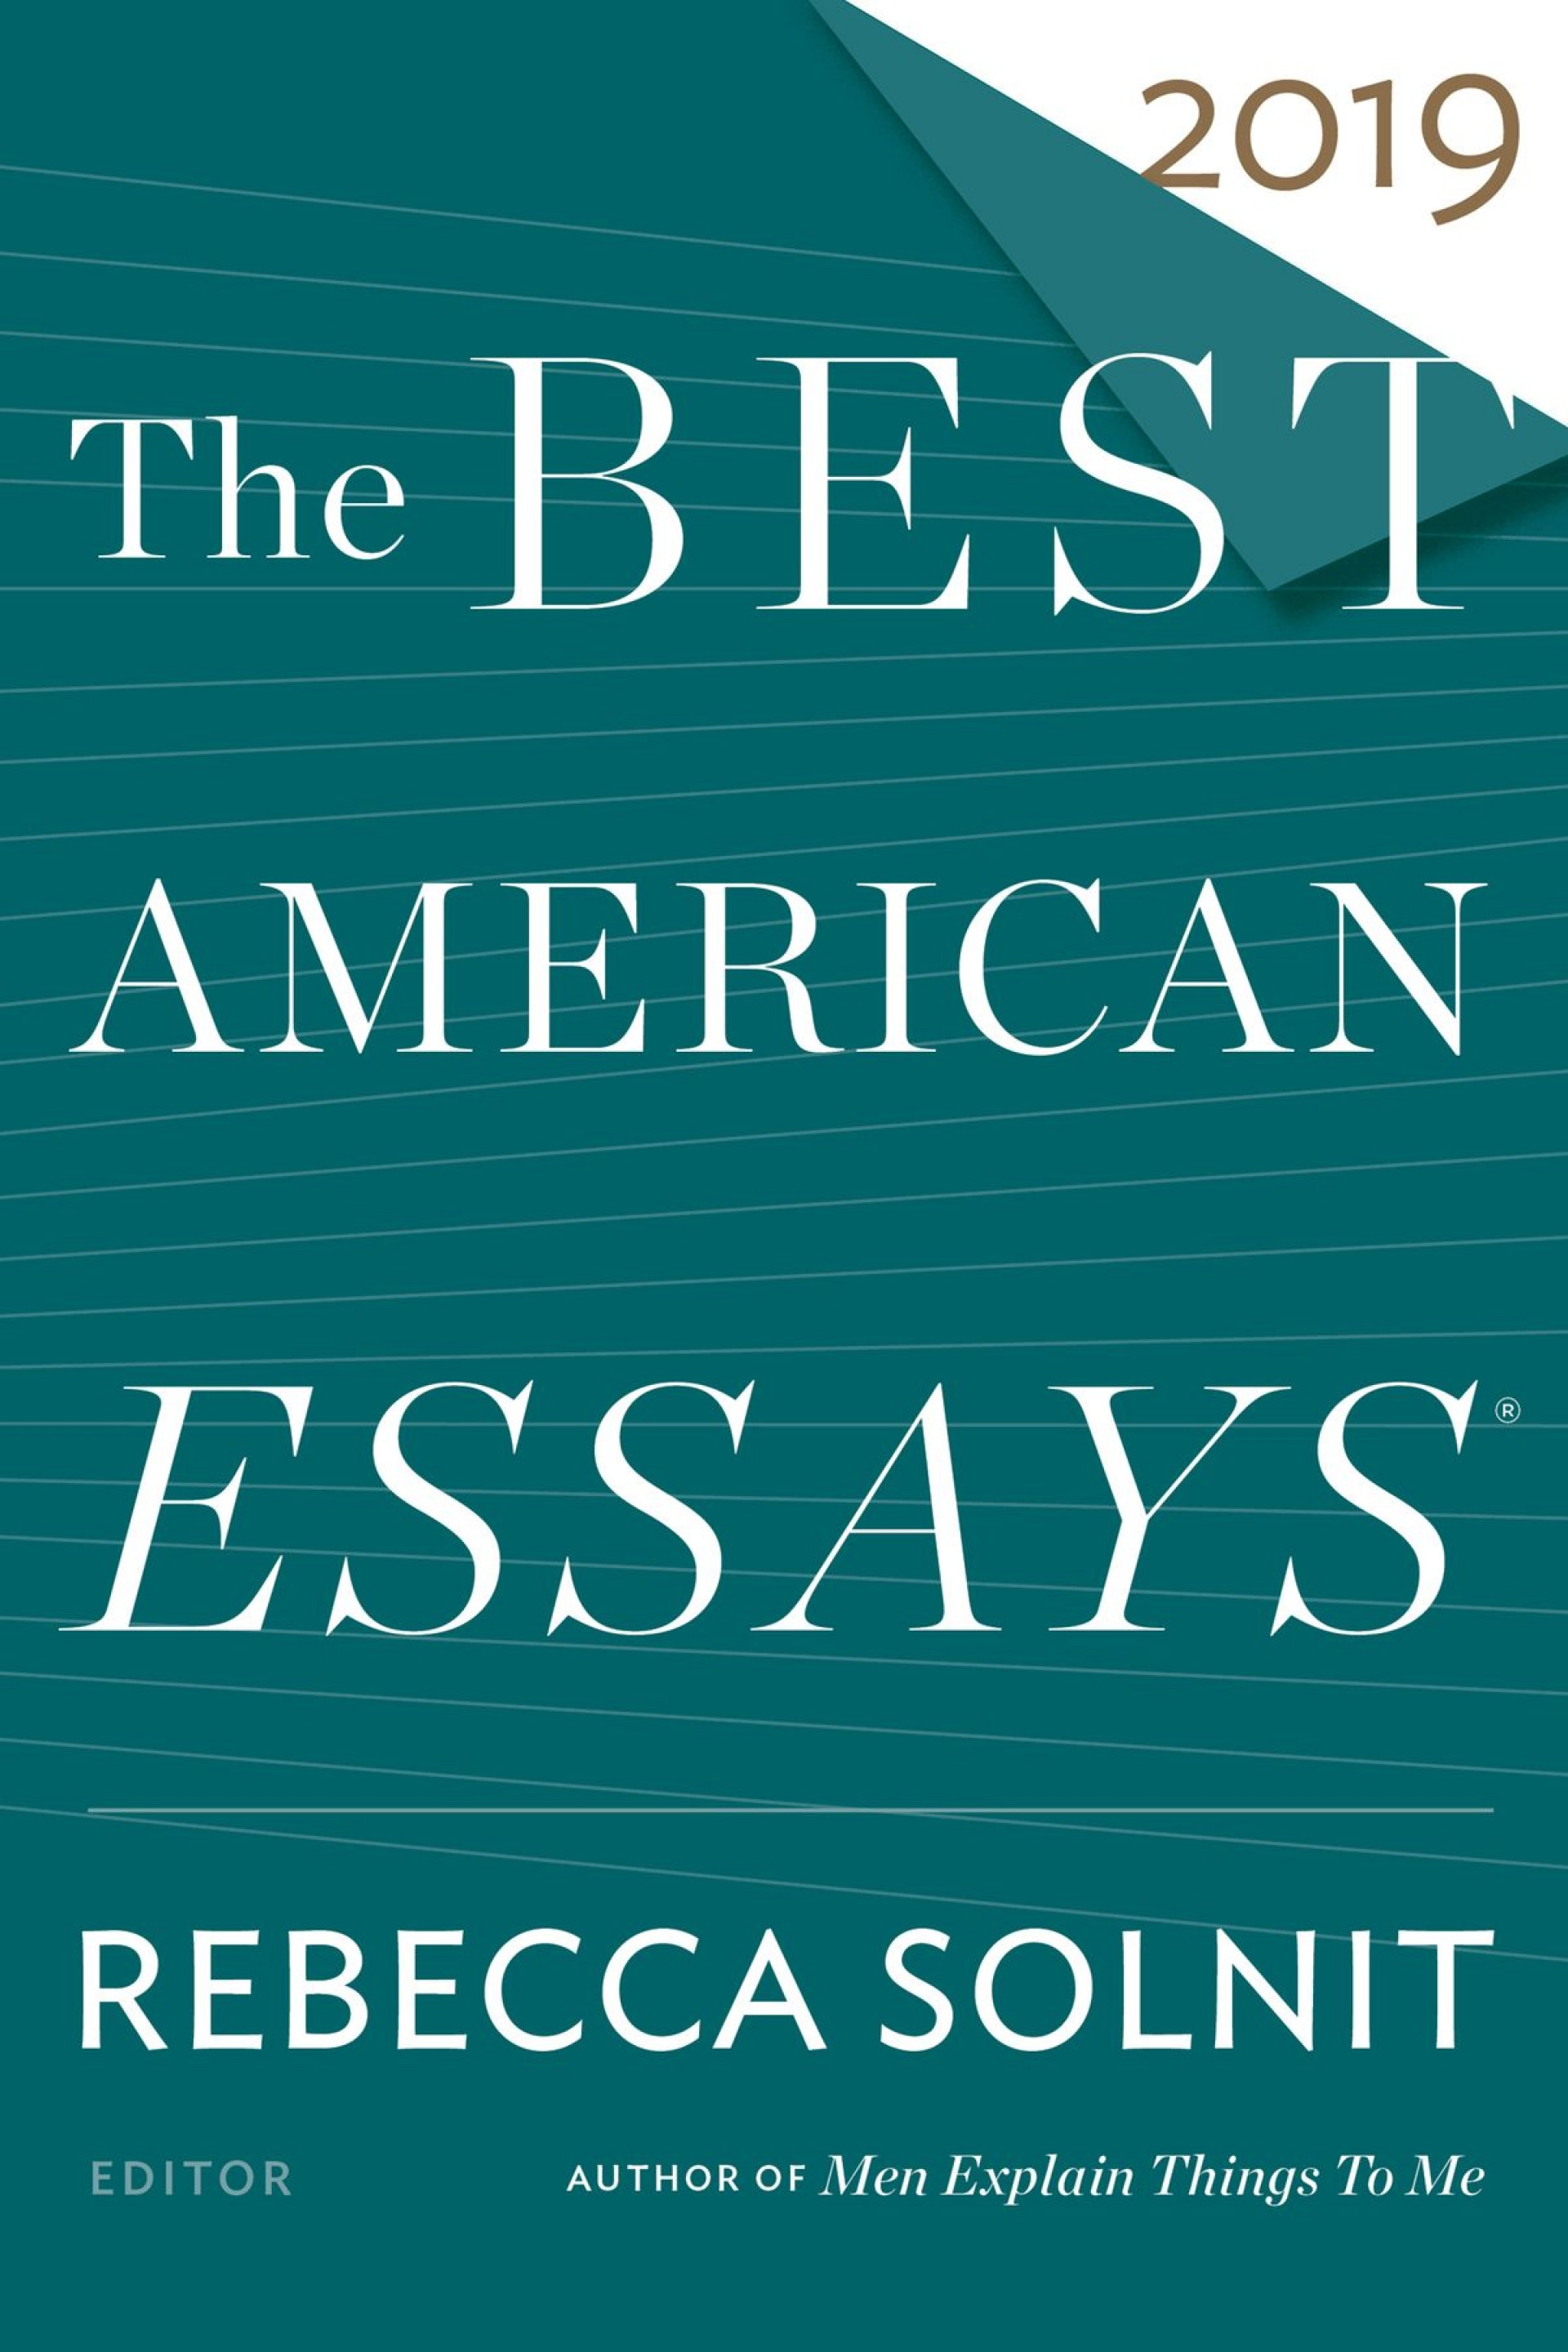 007 The Best American Essays Essay Striking 2017 Table Of Contents Century Pdf 1920